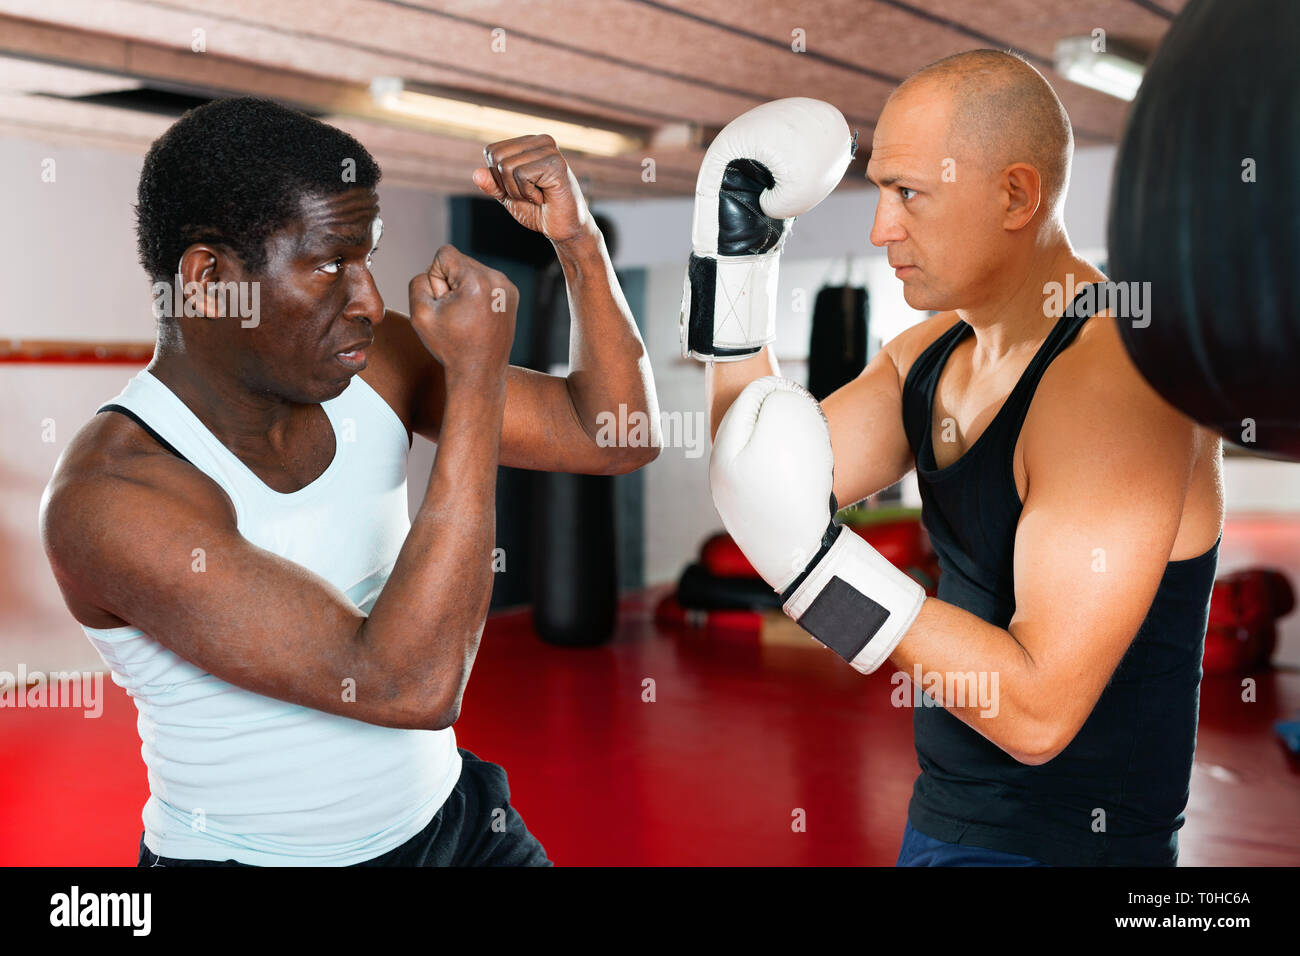 Glad cheerful positive african american trainer teaches man in boxing Stock Photo